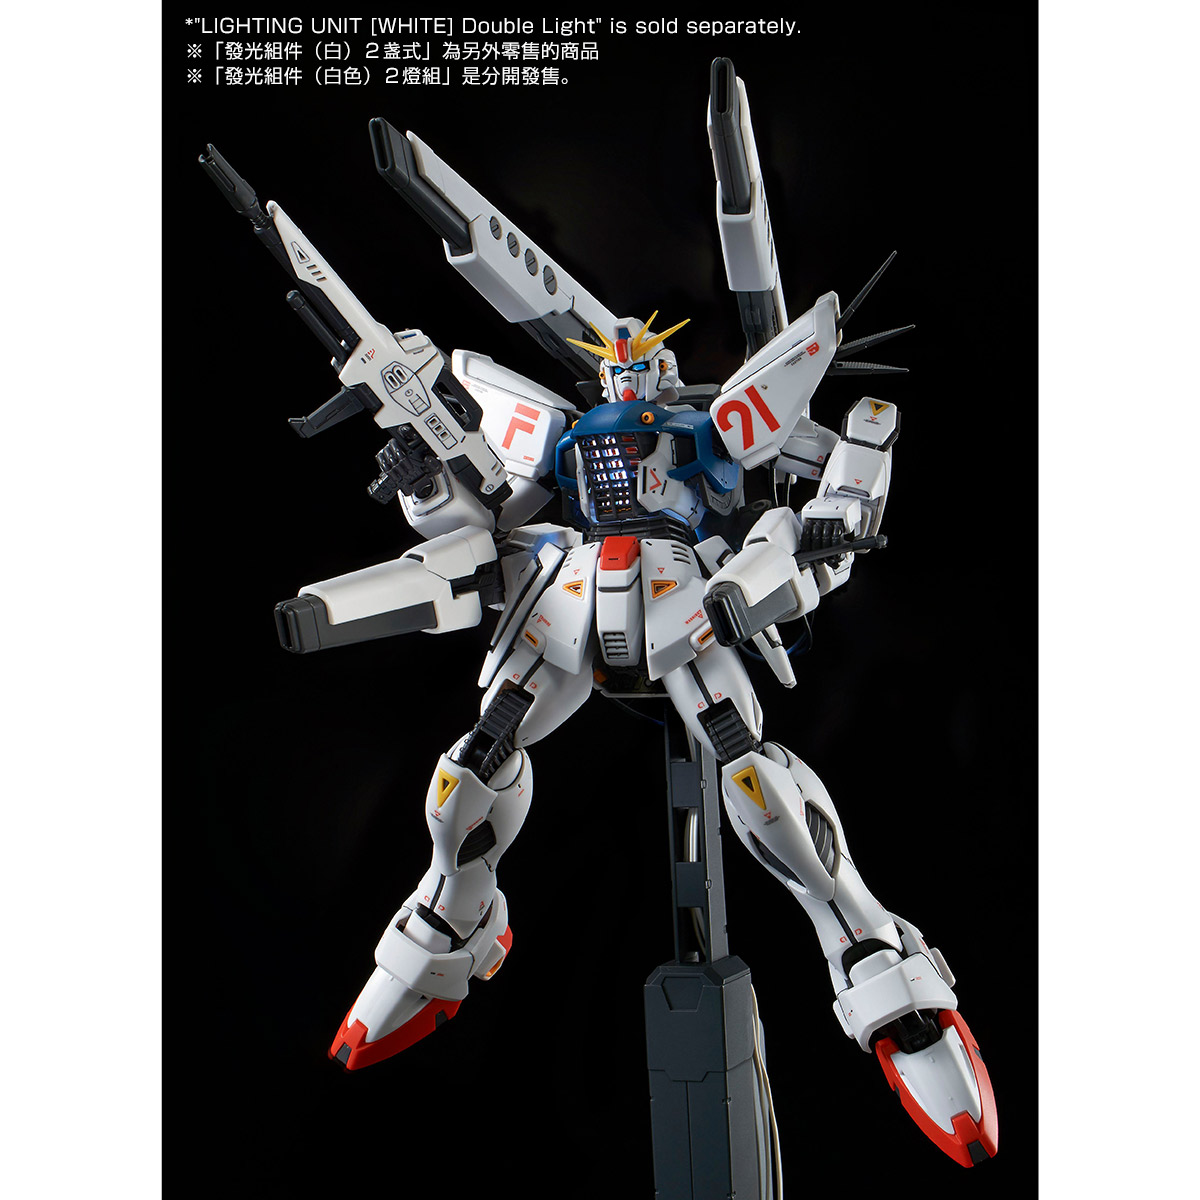 MG 1/100 GUNDAM F91 Ver 2.0 BACK CANNON TYPE & TWIN V.S.B.R. SET UP TYPE [February,2019 Delivery]